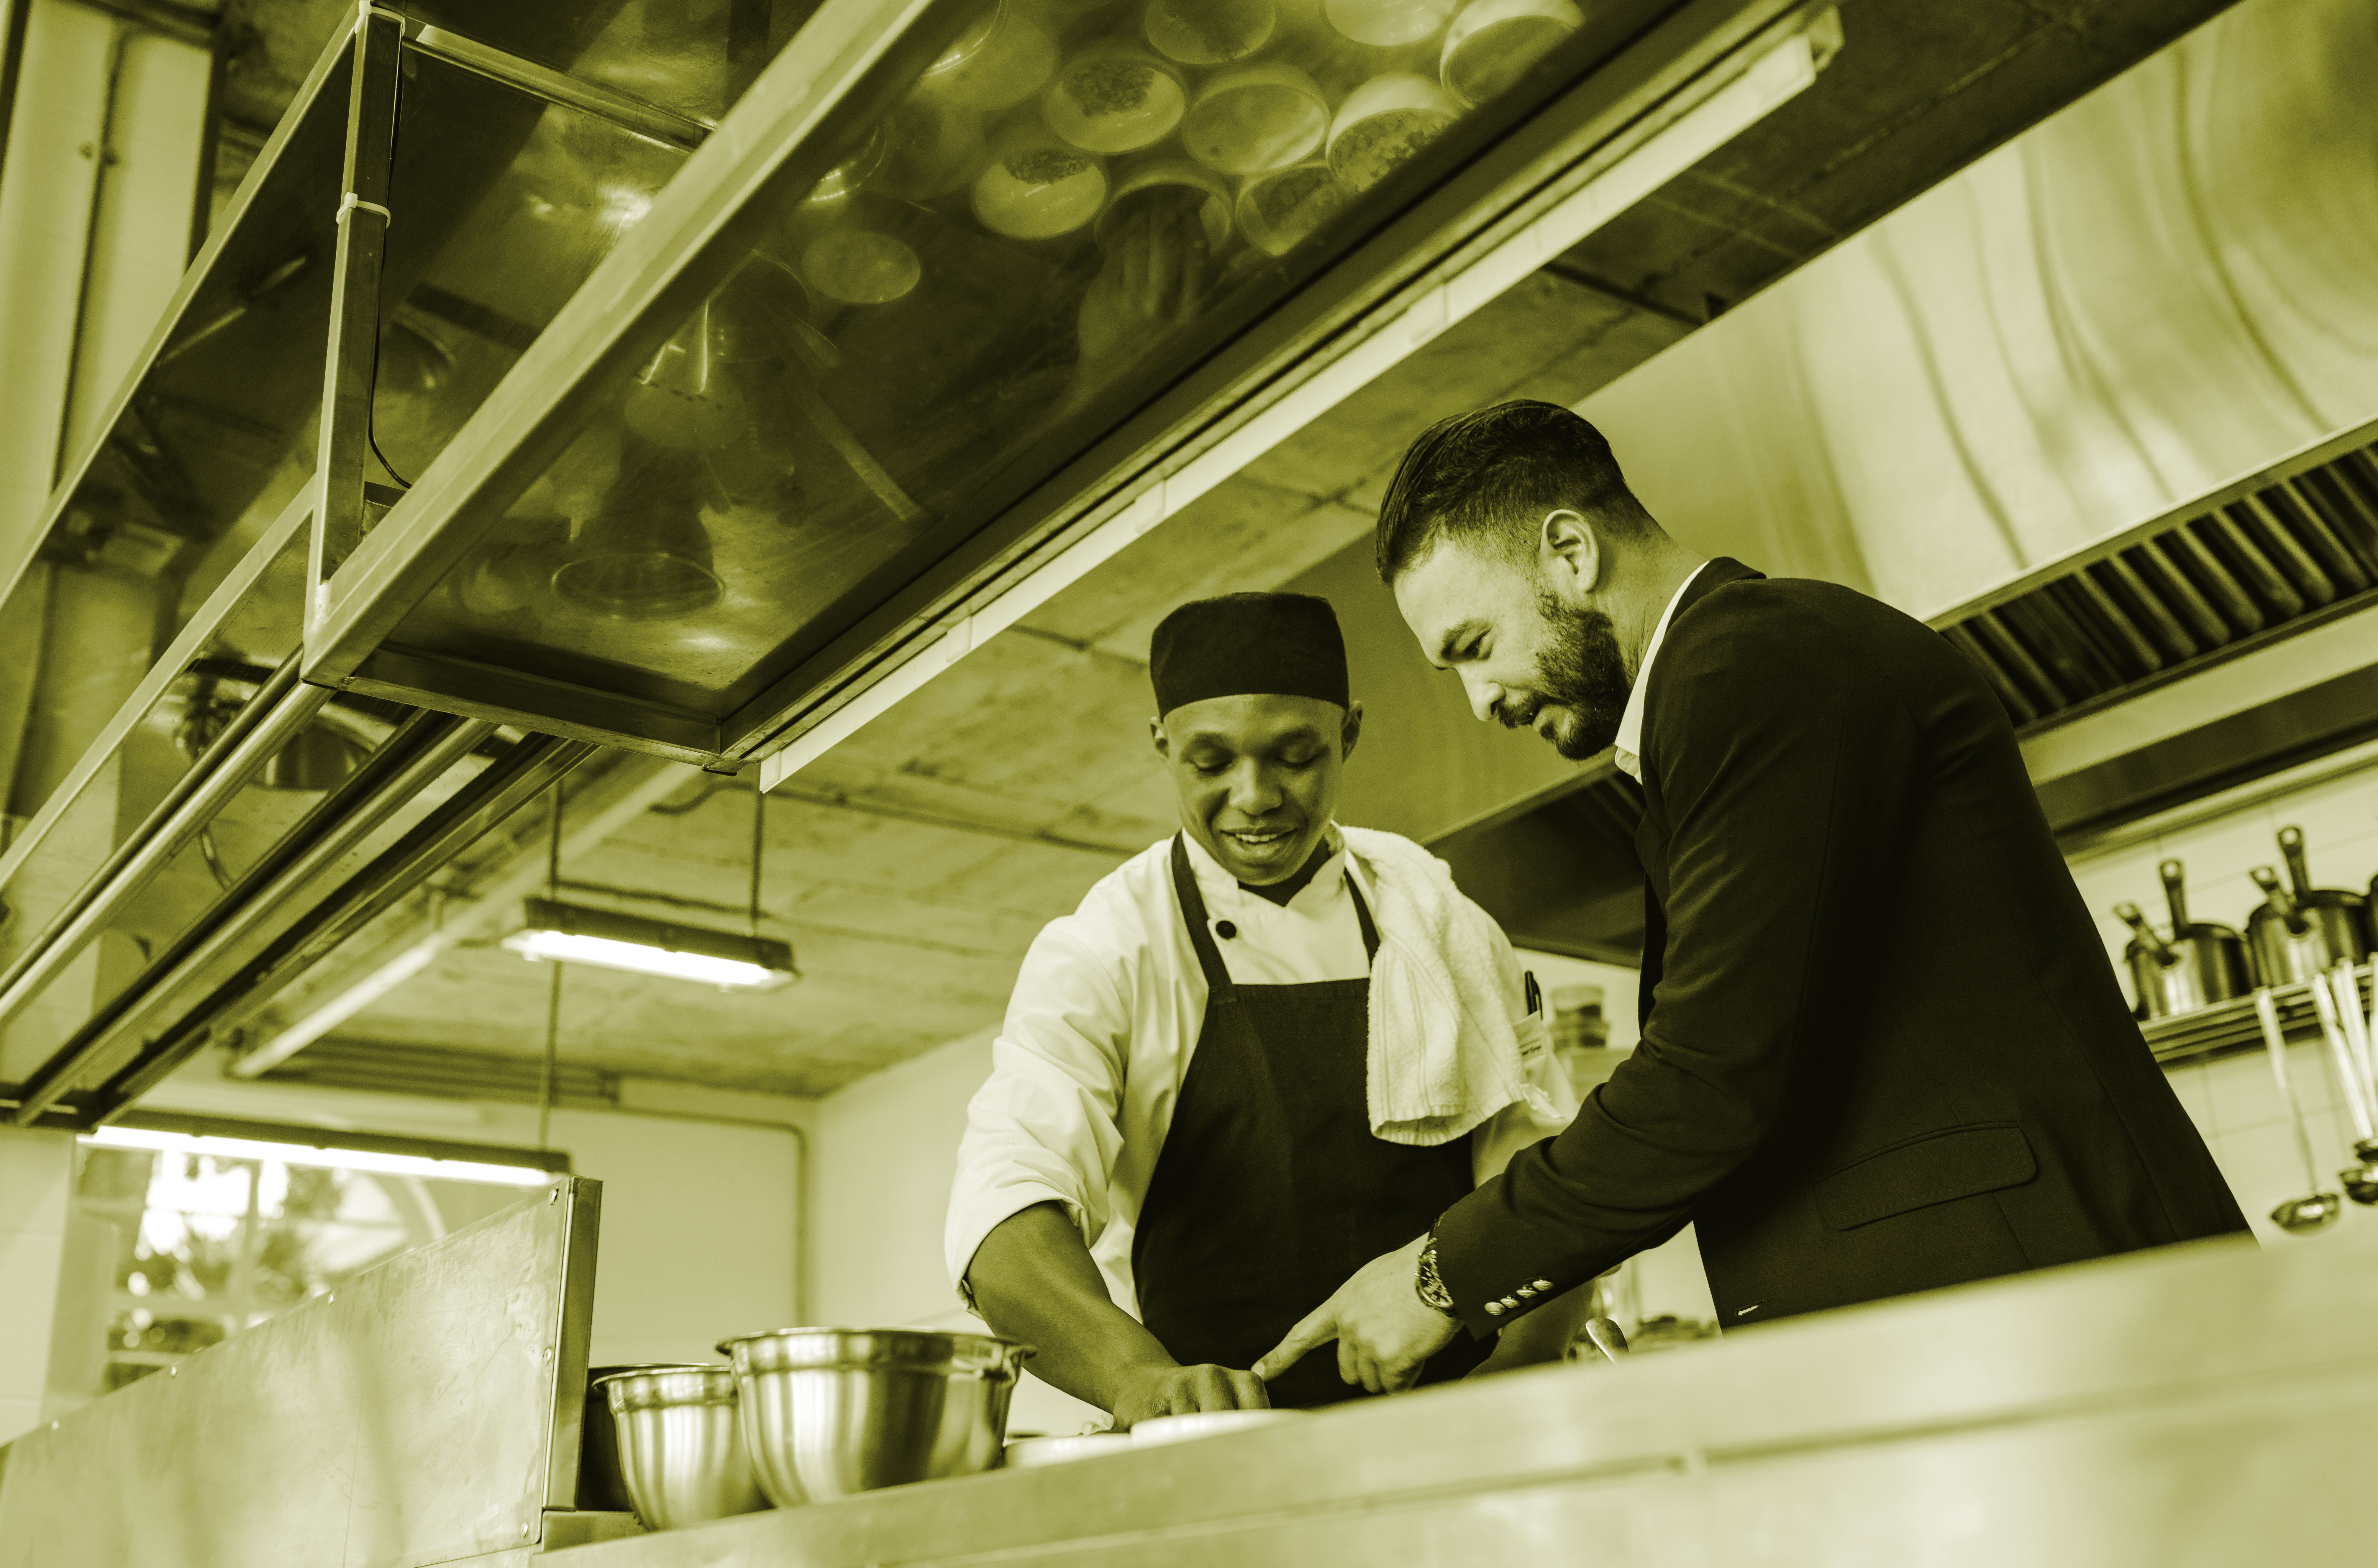 Local authority information after brexit, chef speaking to businessman